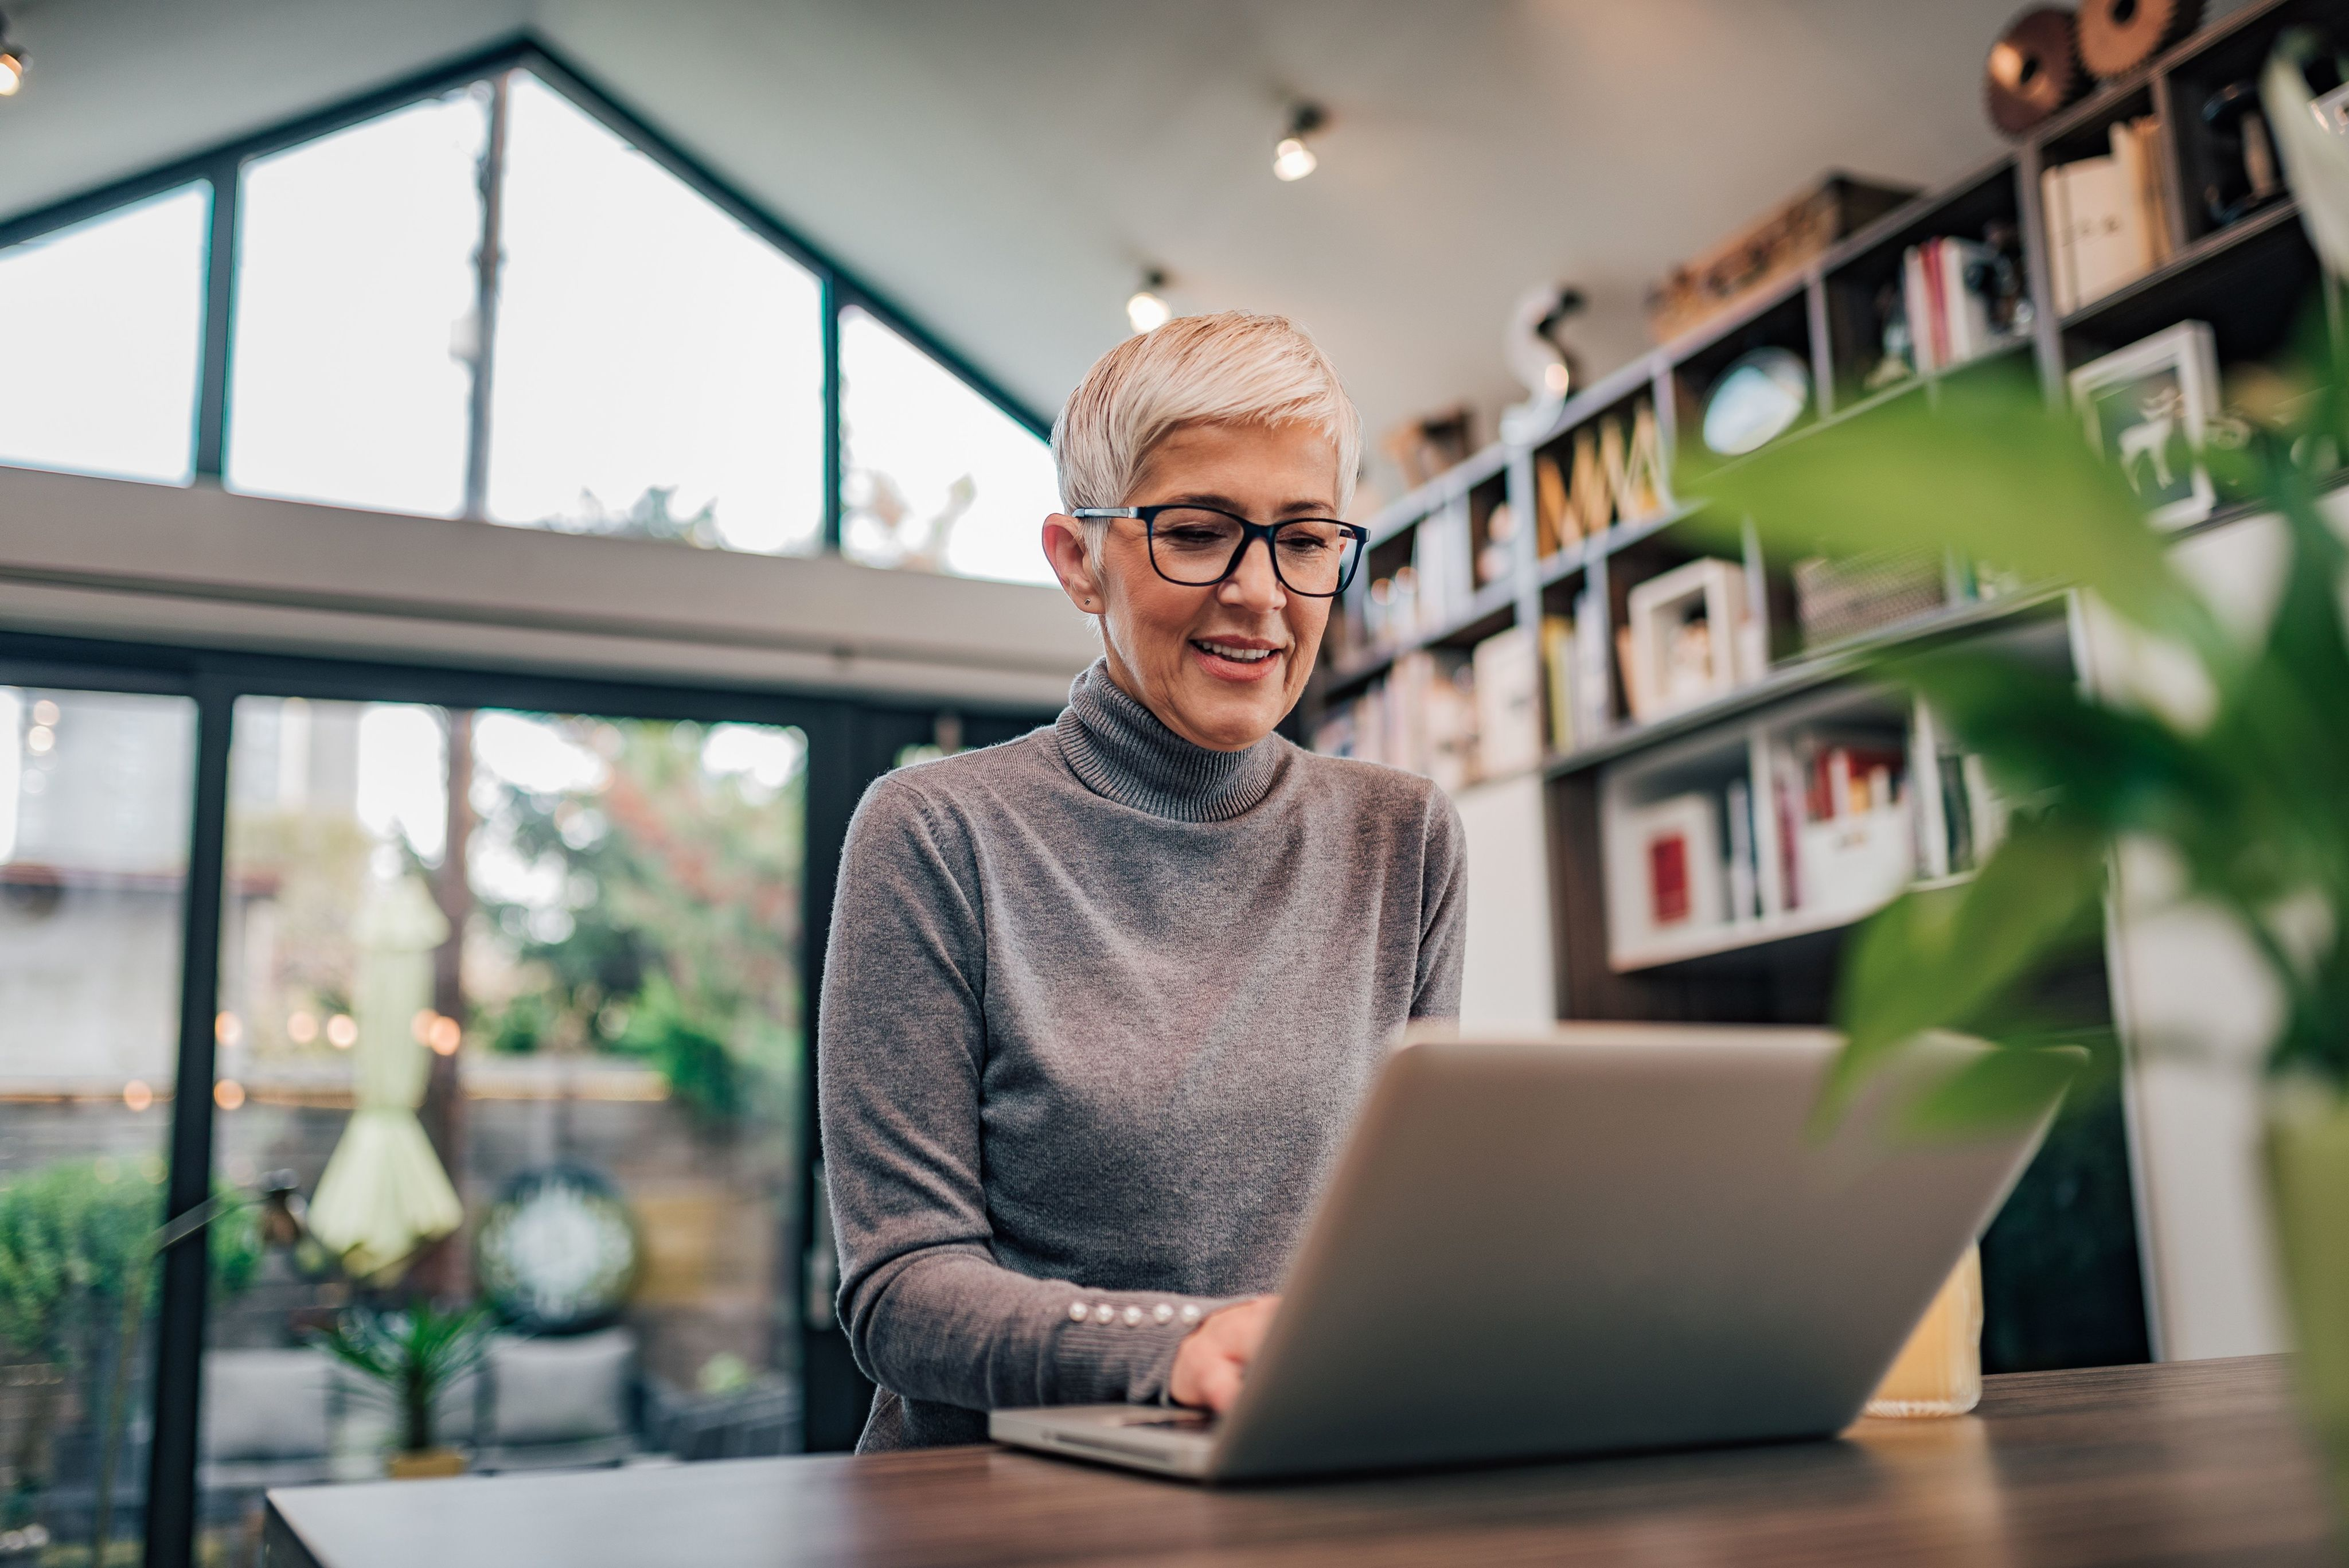 Top 6 Blogs That Every Older Adult Should Follow-image